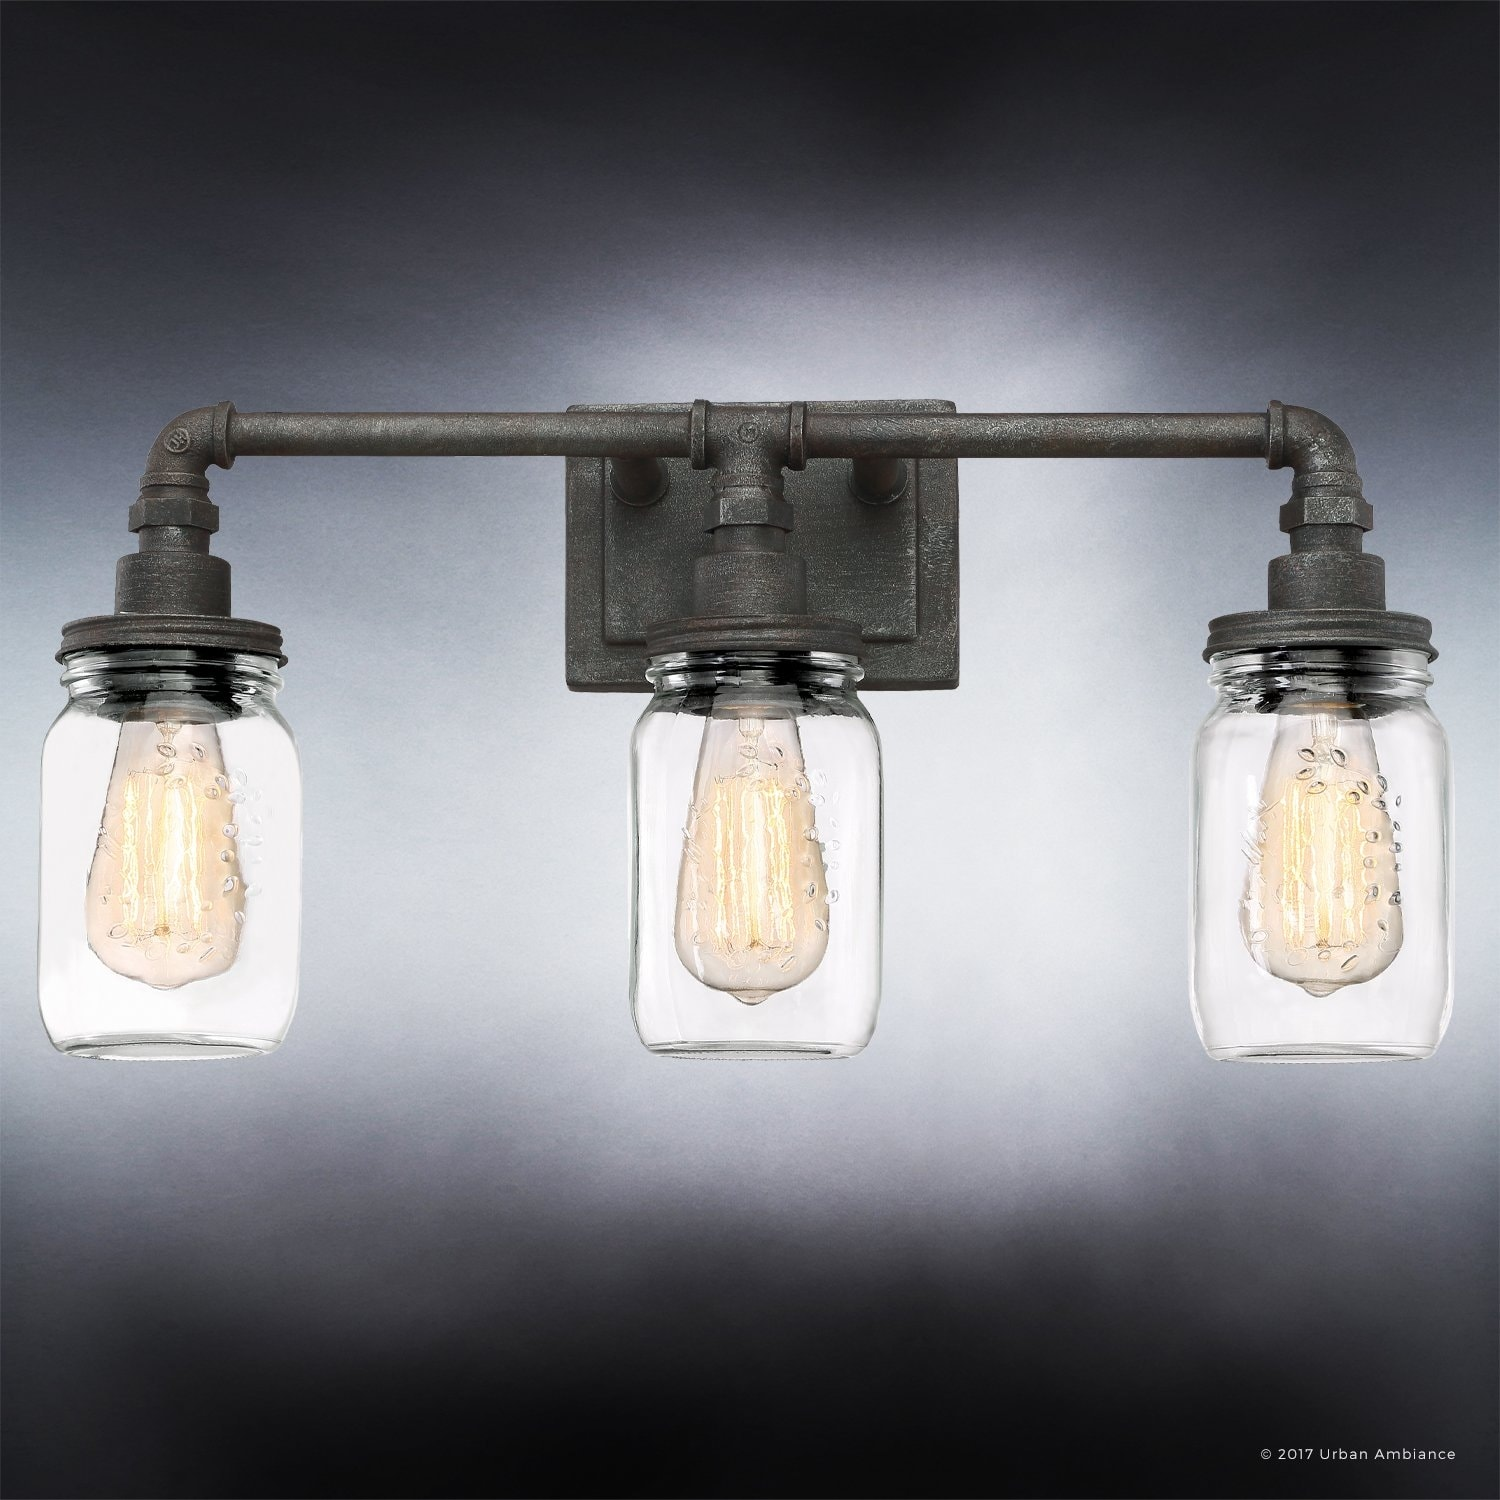 Luxury industrial bathroom light 11h x 215w with shabby chic luxury industrial bathroom light 11h x 215w with shabby chic style aged pipe designantique black finish free shipping today overstock 25476164 mozeypictures